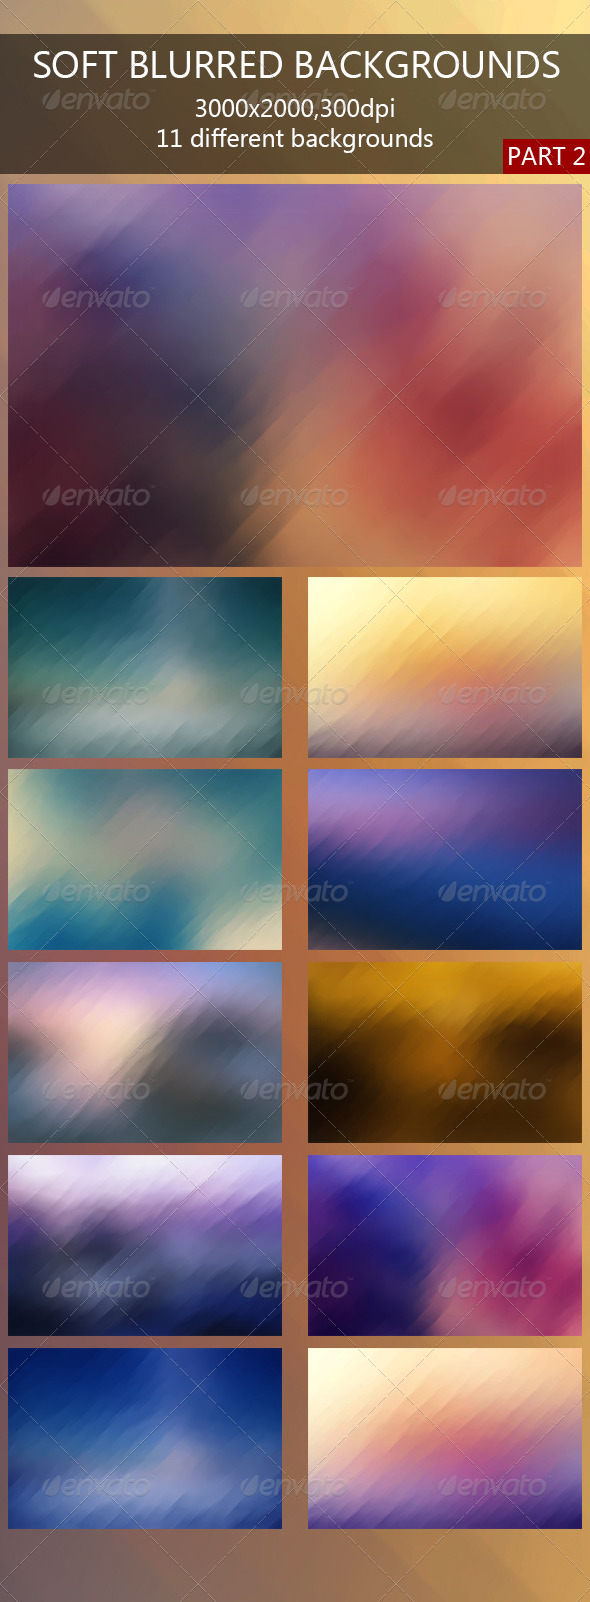 GraphicRiver Soft Blurred Backgrounds 2 7949083